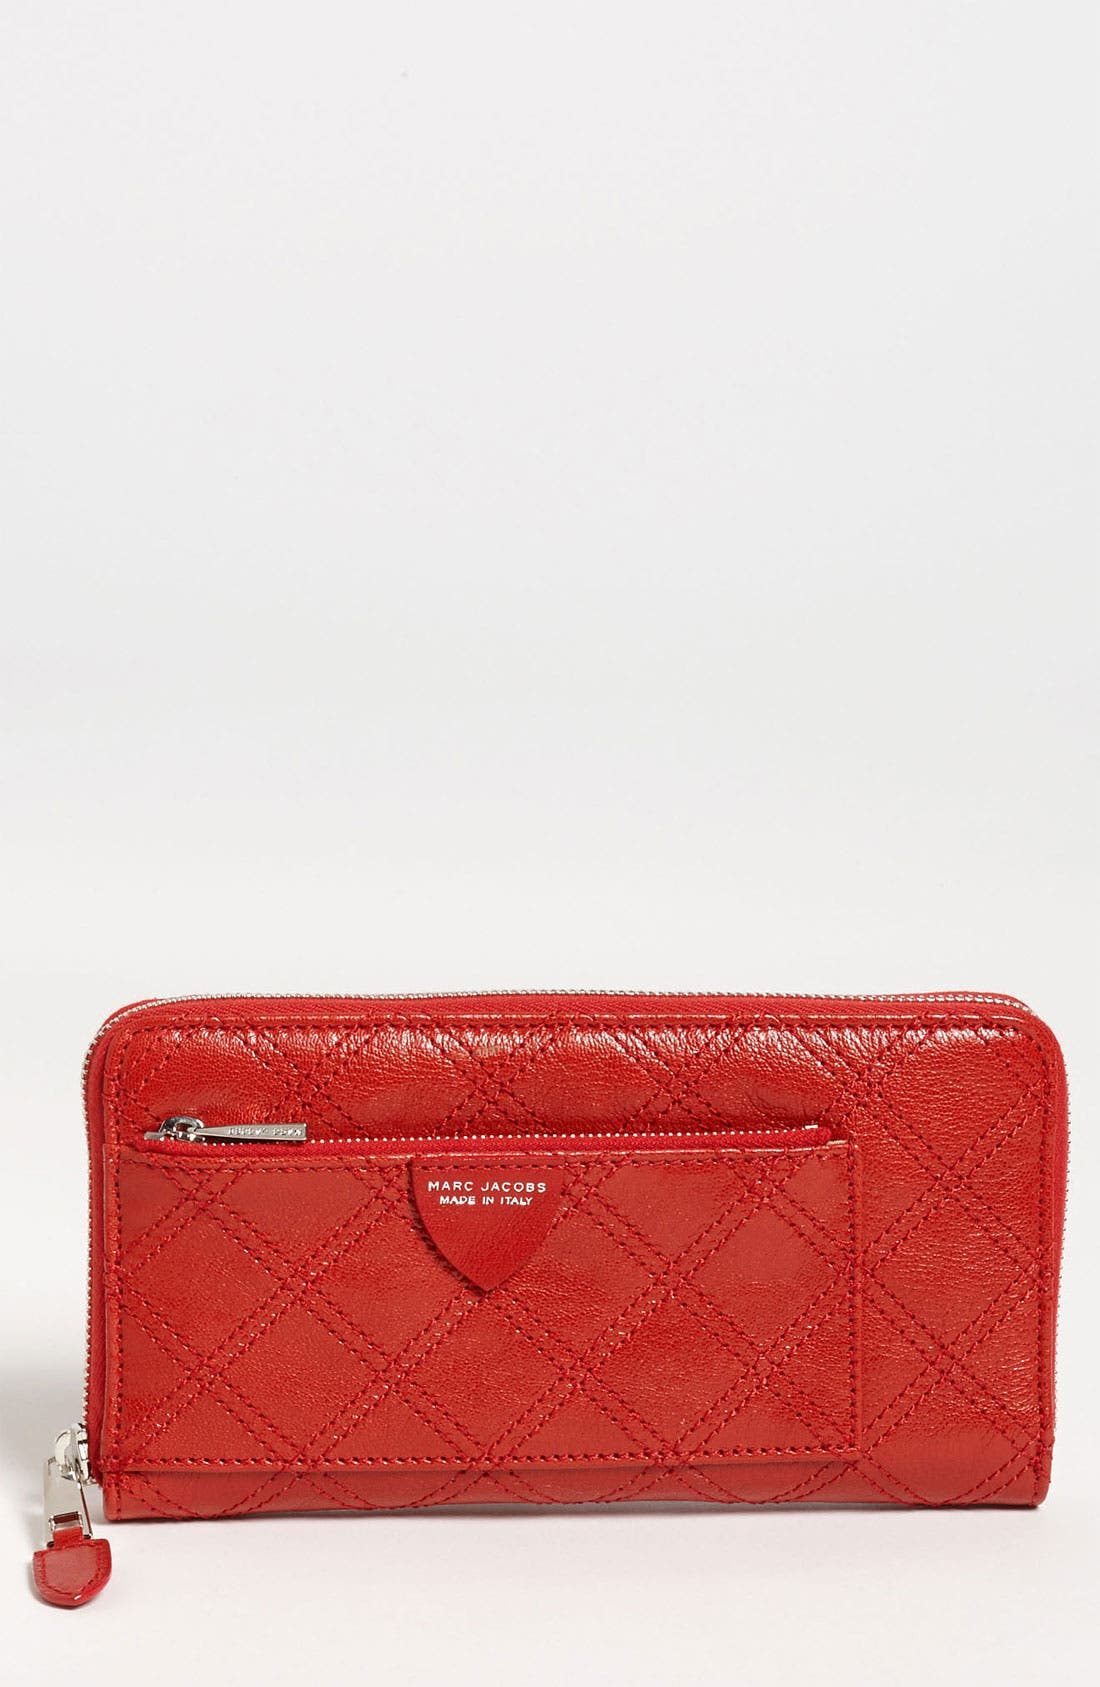 Alternate Image 1 Selected - MARC JACOBS 'Sister' Leather Wallet